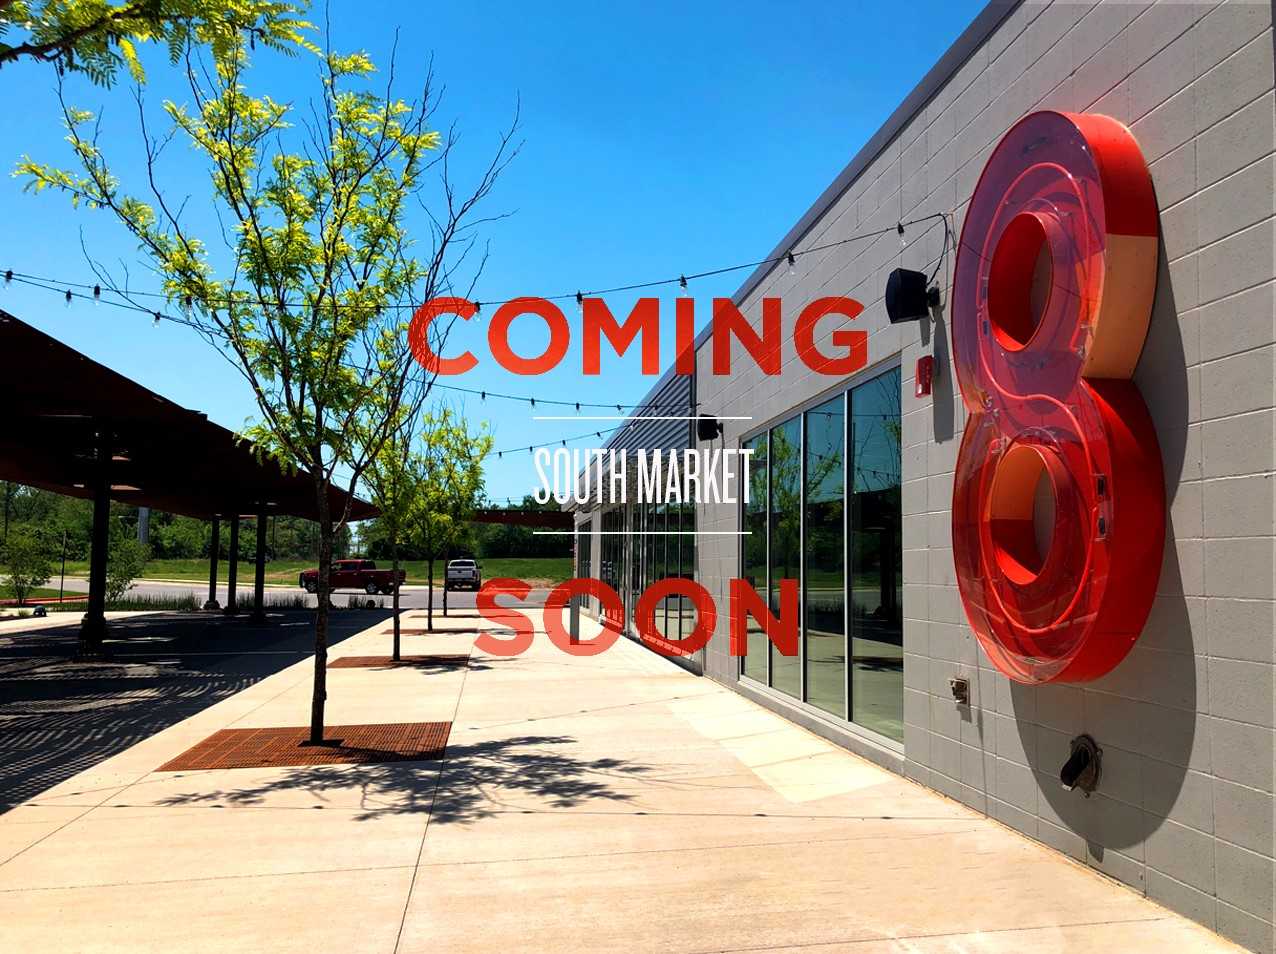 South Market to Open in 8th Street Market, Bringing Exciting New Flavors and Food Options